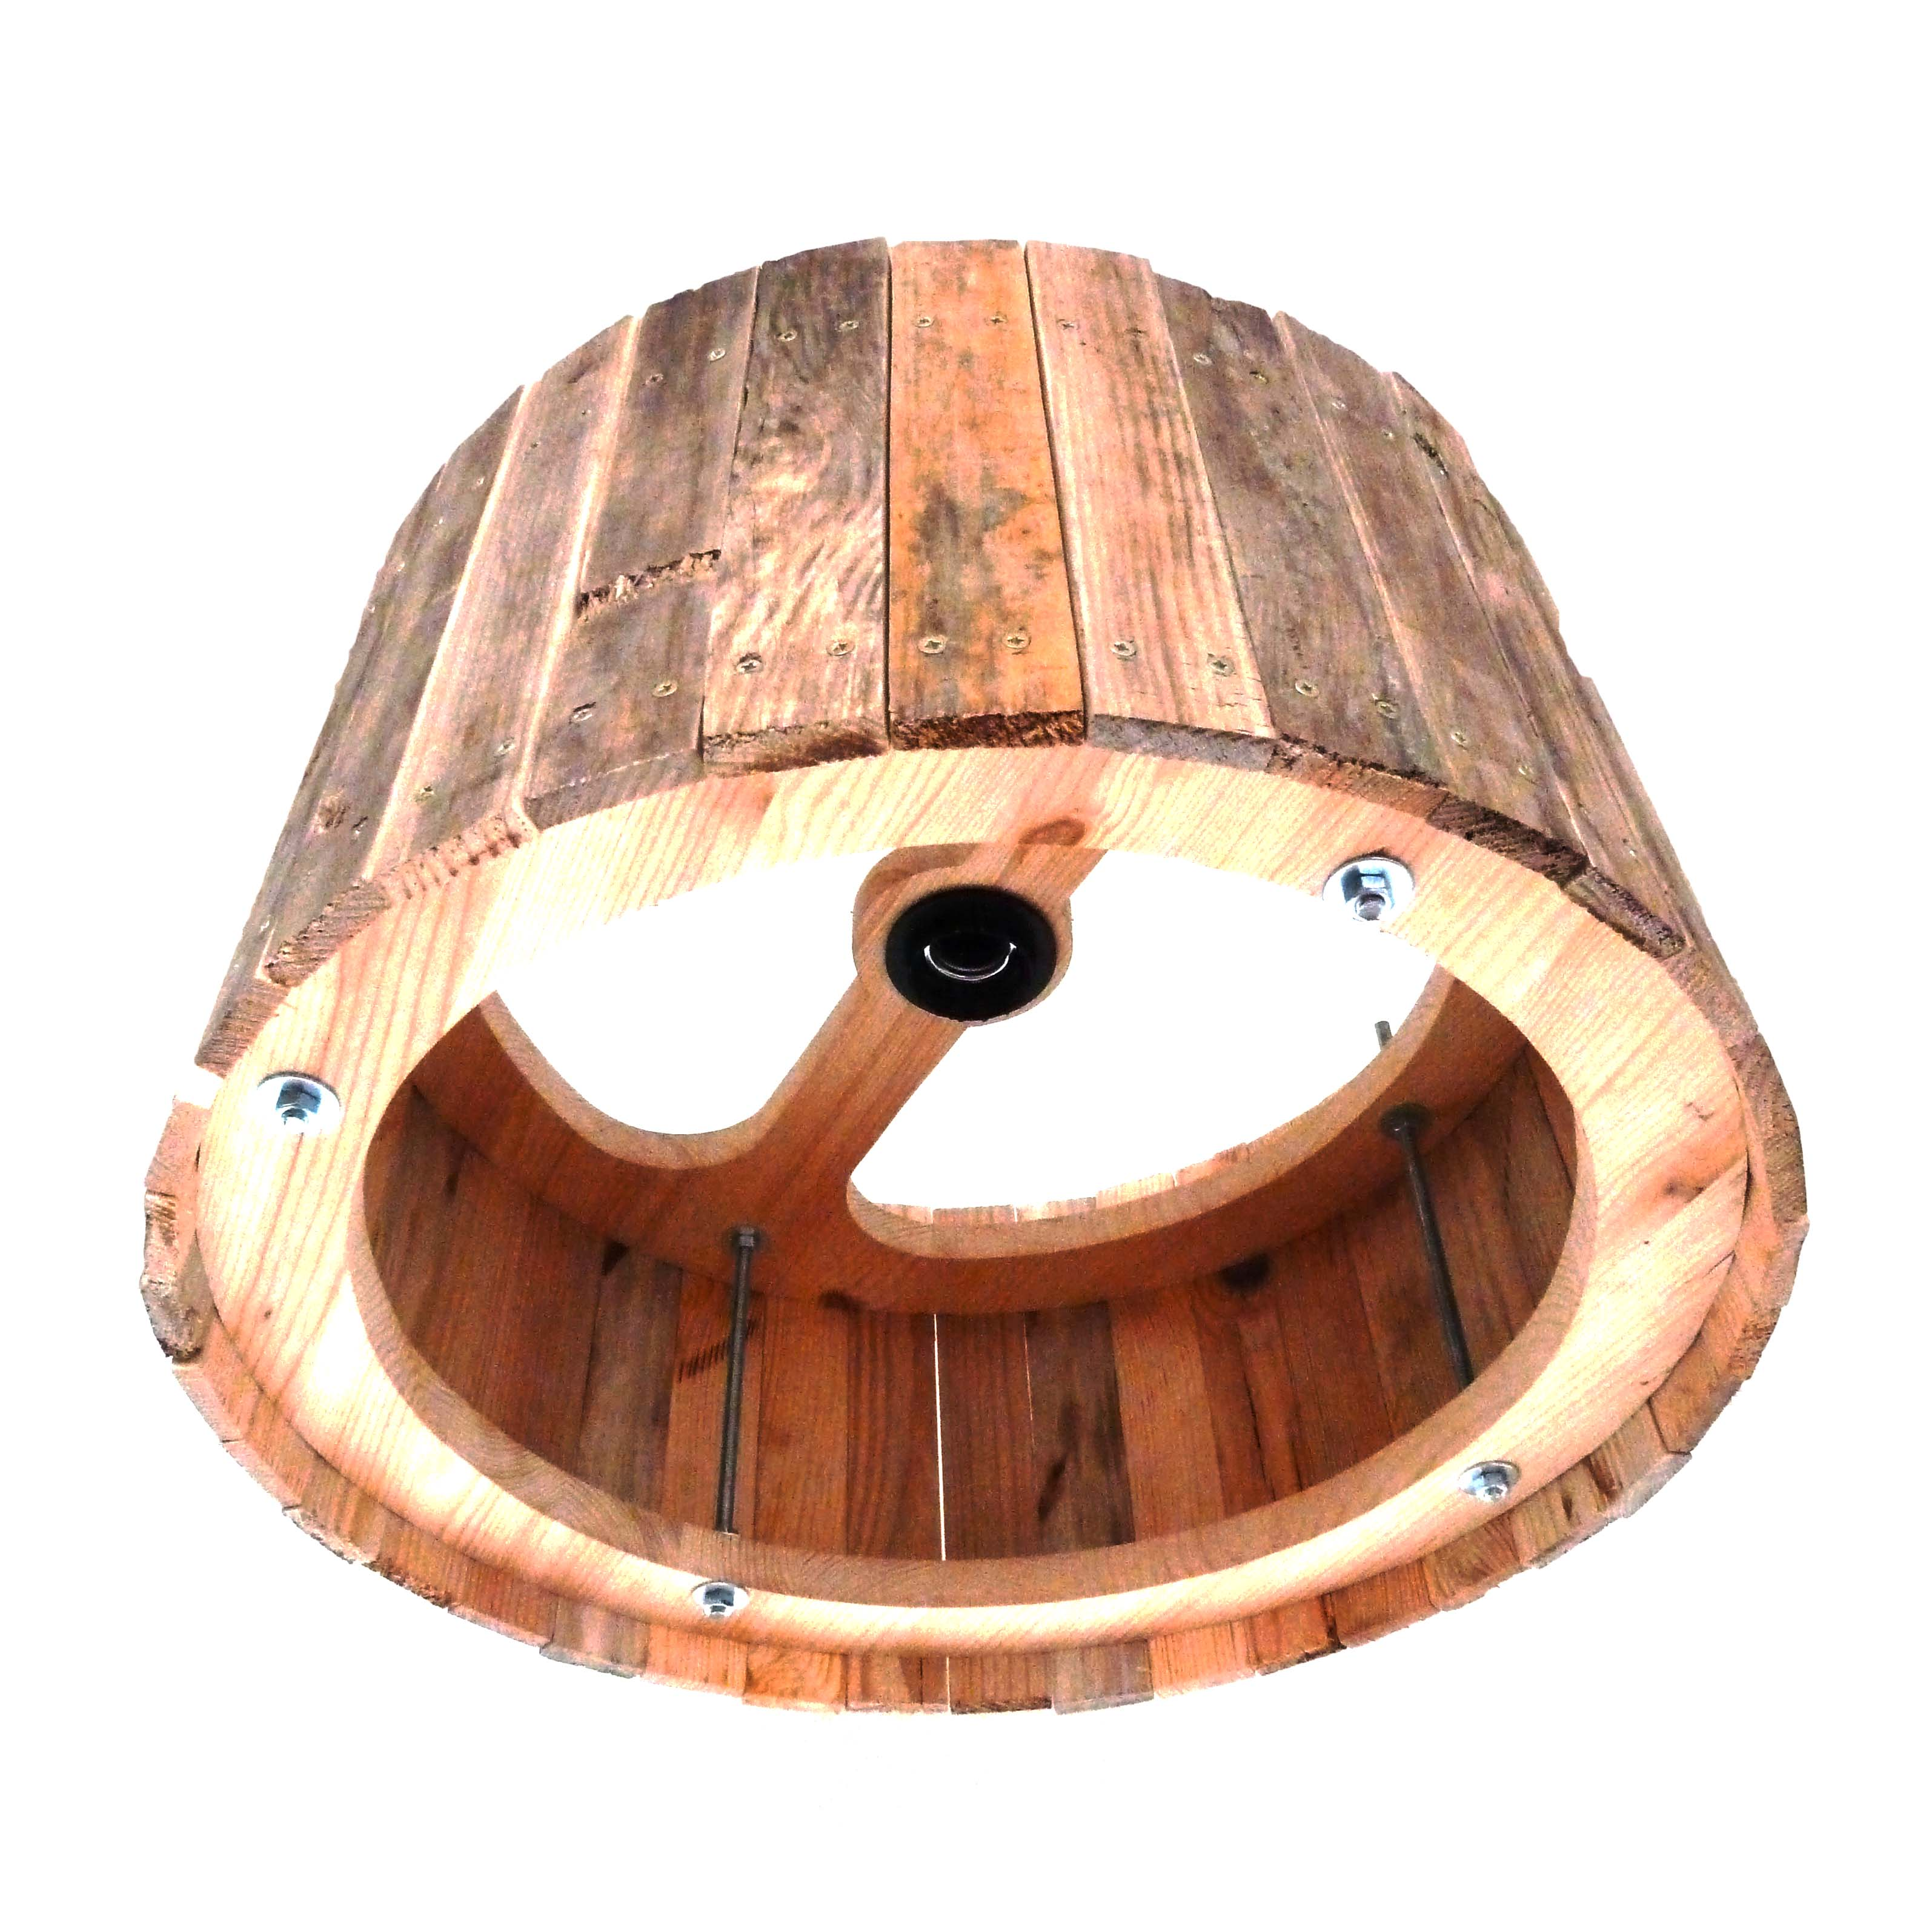 Industri le houten hanglamp 39 wood fellas 39 indusigns for Design lamp hout